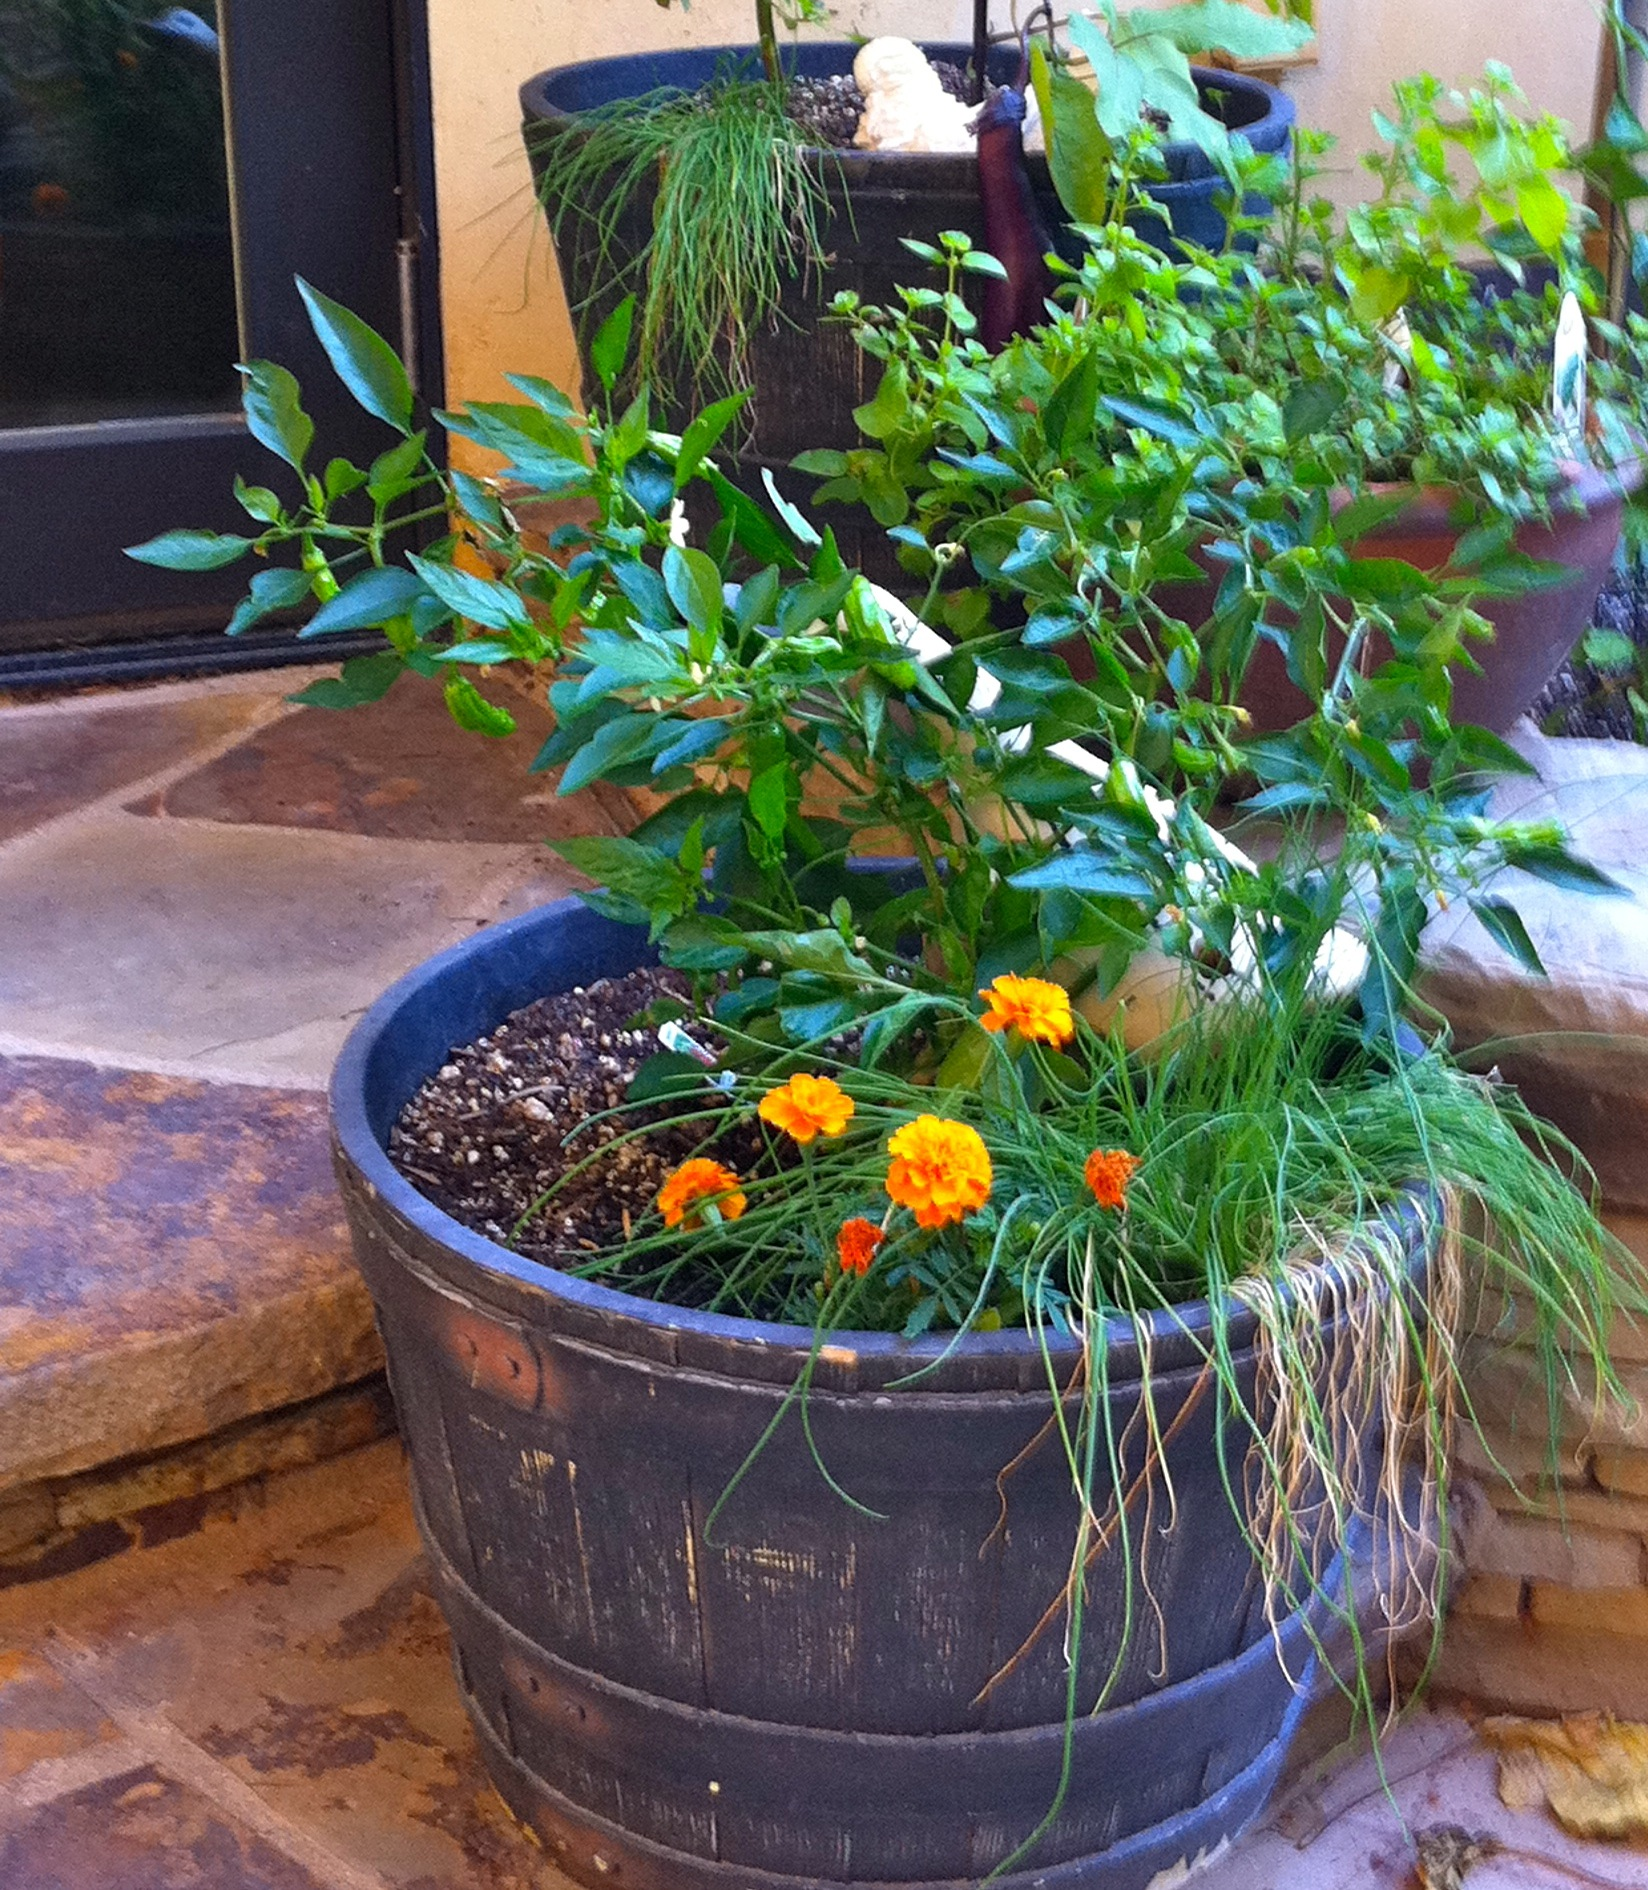 barrel garden. shishito peppers growing in a whiskey barrel garden container with marigolds